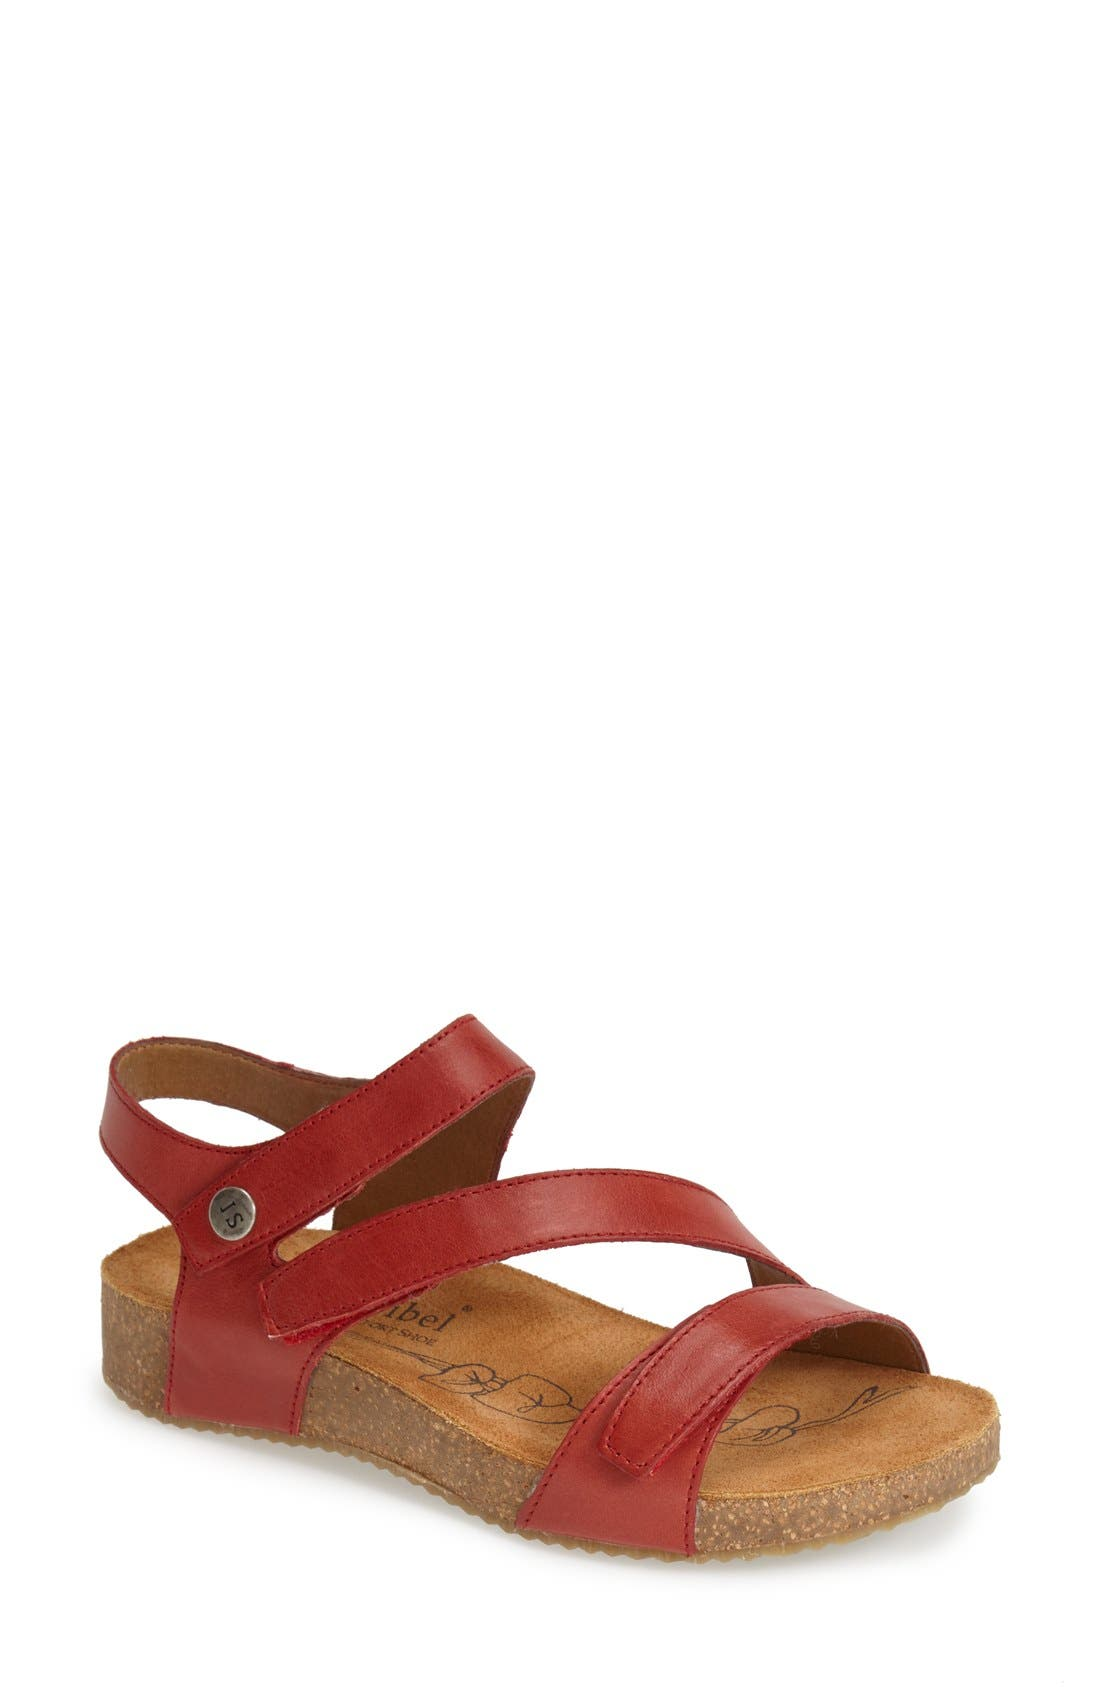 Josef Seibel 'Tonga' Leather Sandal (Women)